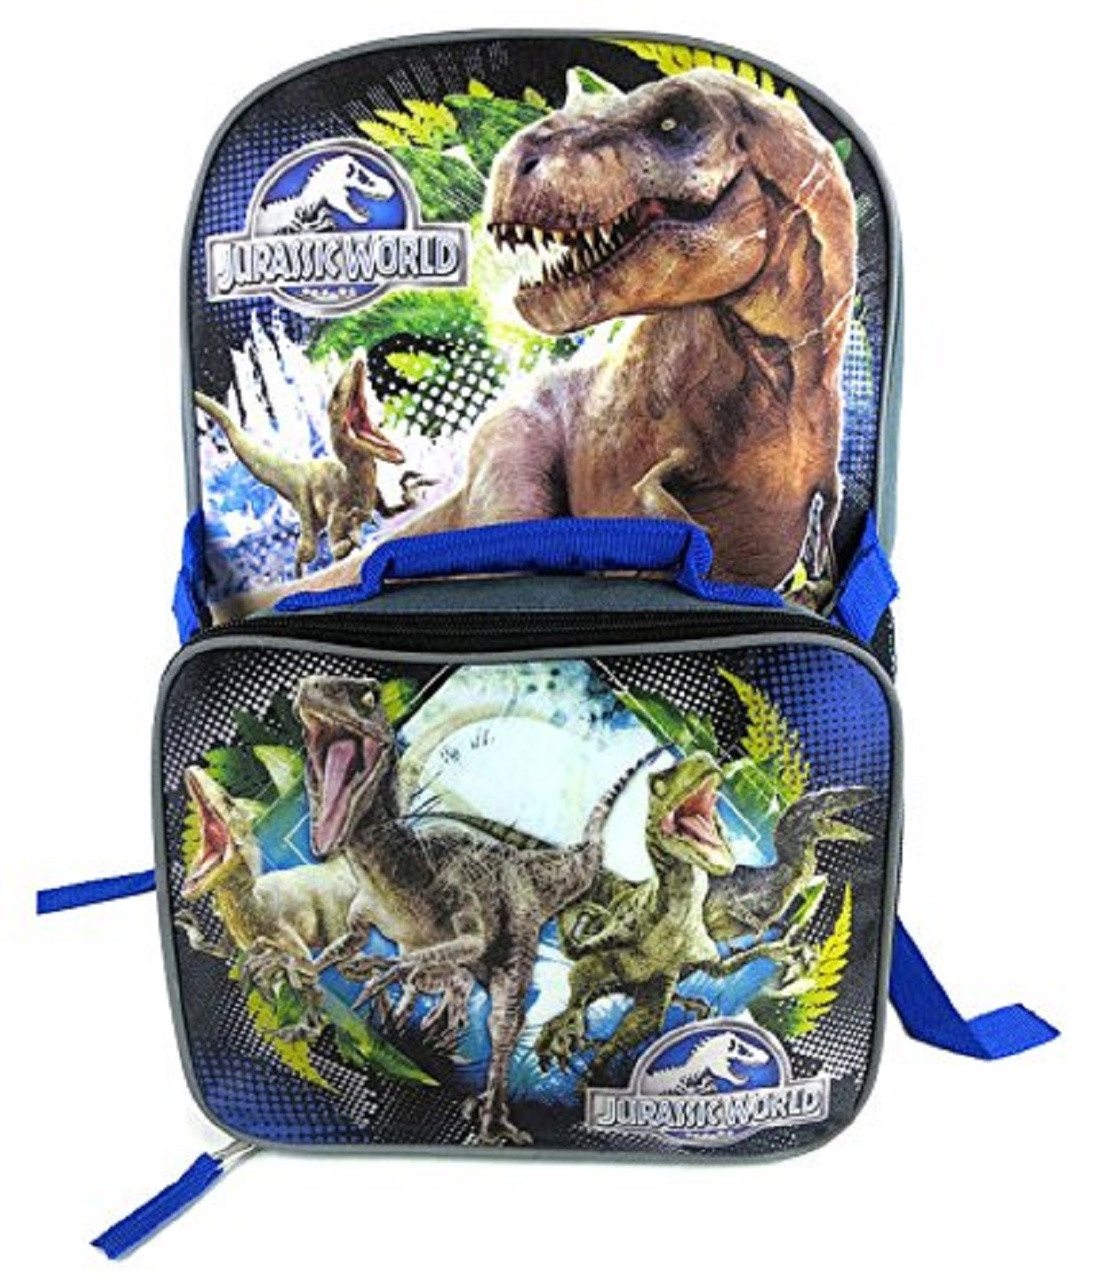 Backpack - Jurassic World - Large 16 Inch - w Lunch Box